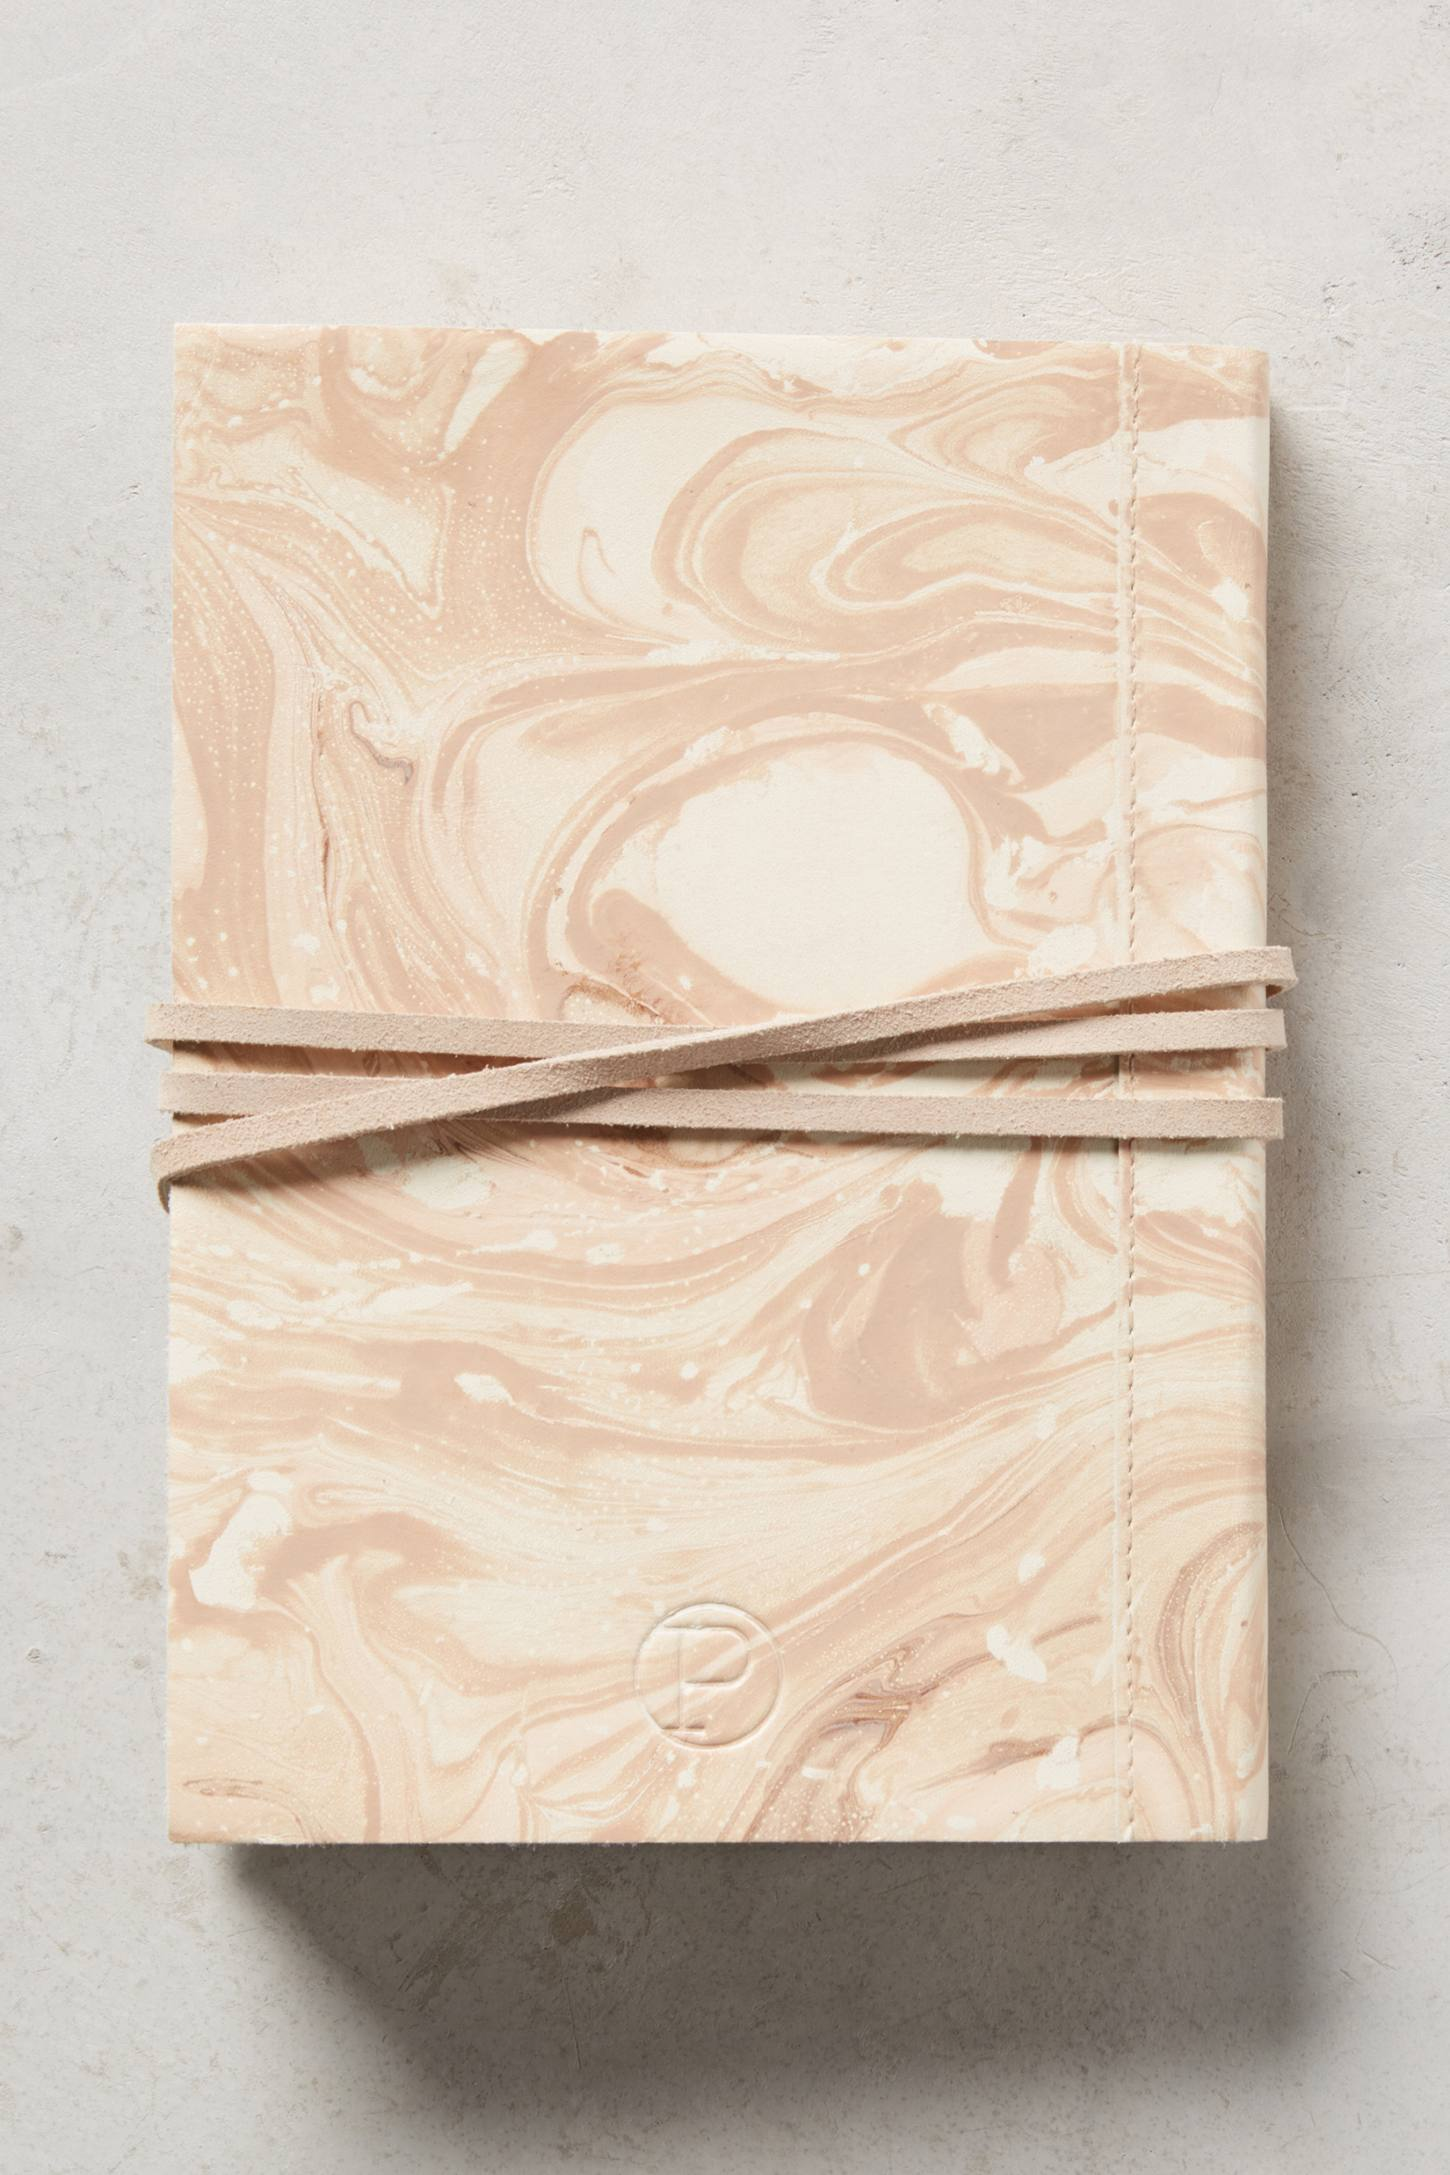 Slide View: 2: Marbled Journal